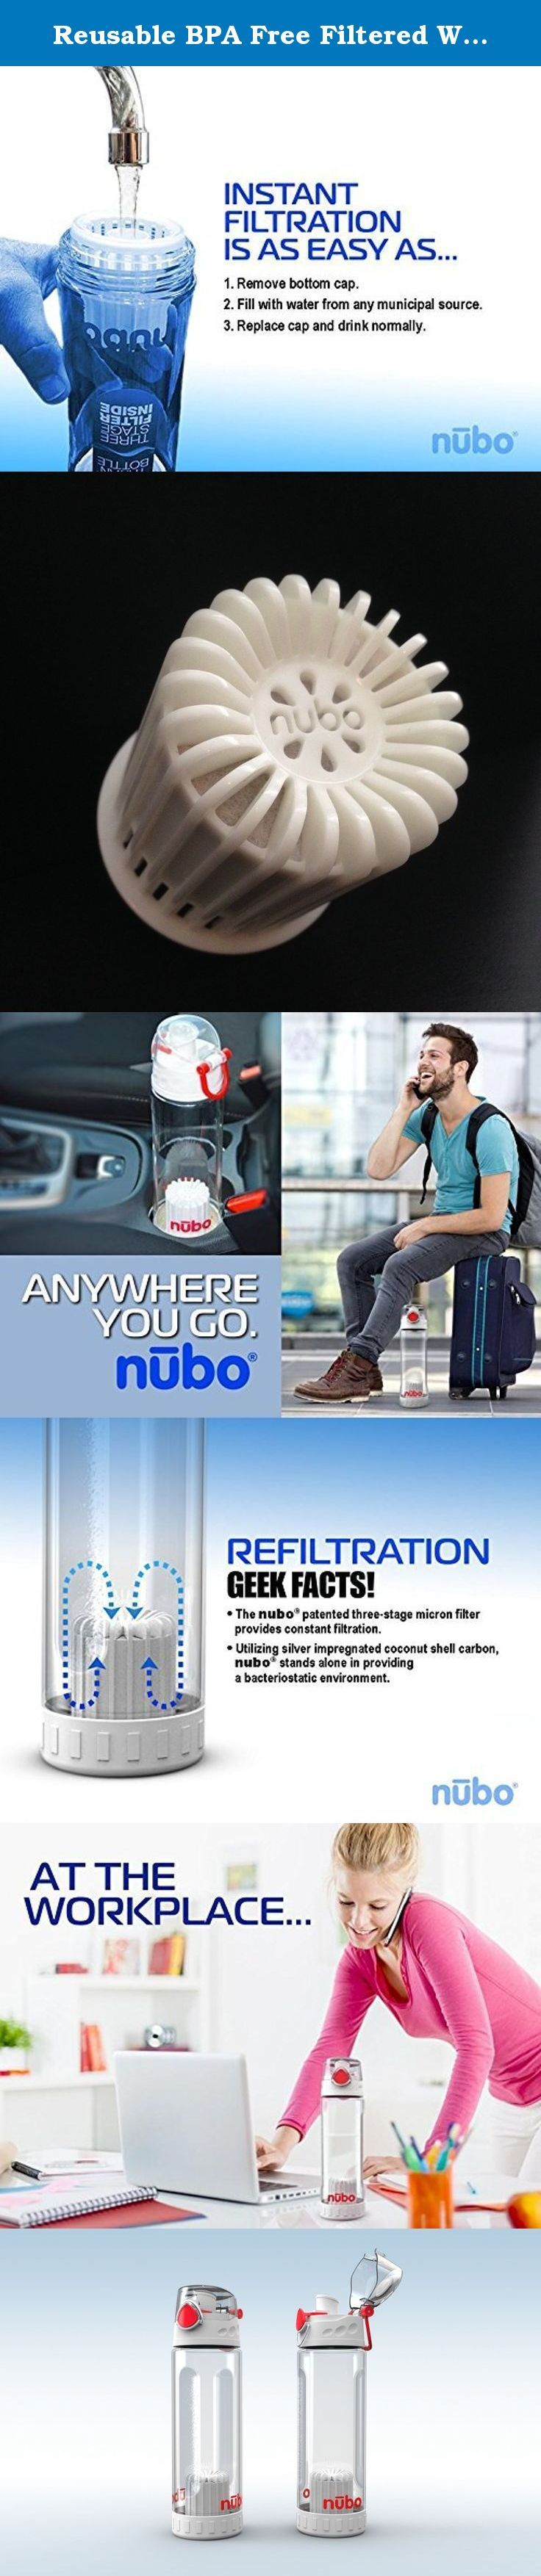 Reusable BPA Free Filtered Water Bottle Twin Pack. These two Nubo Bottles are unique,patented, environmentally conscious and economically practical alternative to single use bottled water. Nubo filtered water bottle filters tap water and creates the best tasting, most pure water you've ever experienced! BPA free bottle and ergonomic, these convenient bottles will fit in your car holder and are top rack dishwasher safe. With both ends of this portable water filter bottle removed you will...